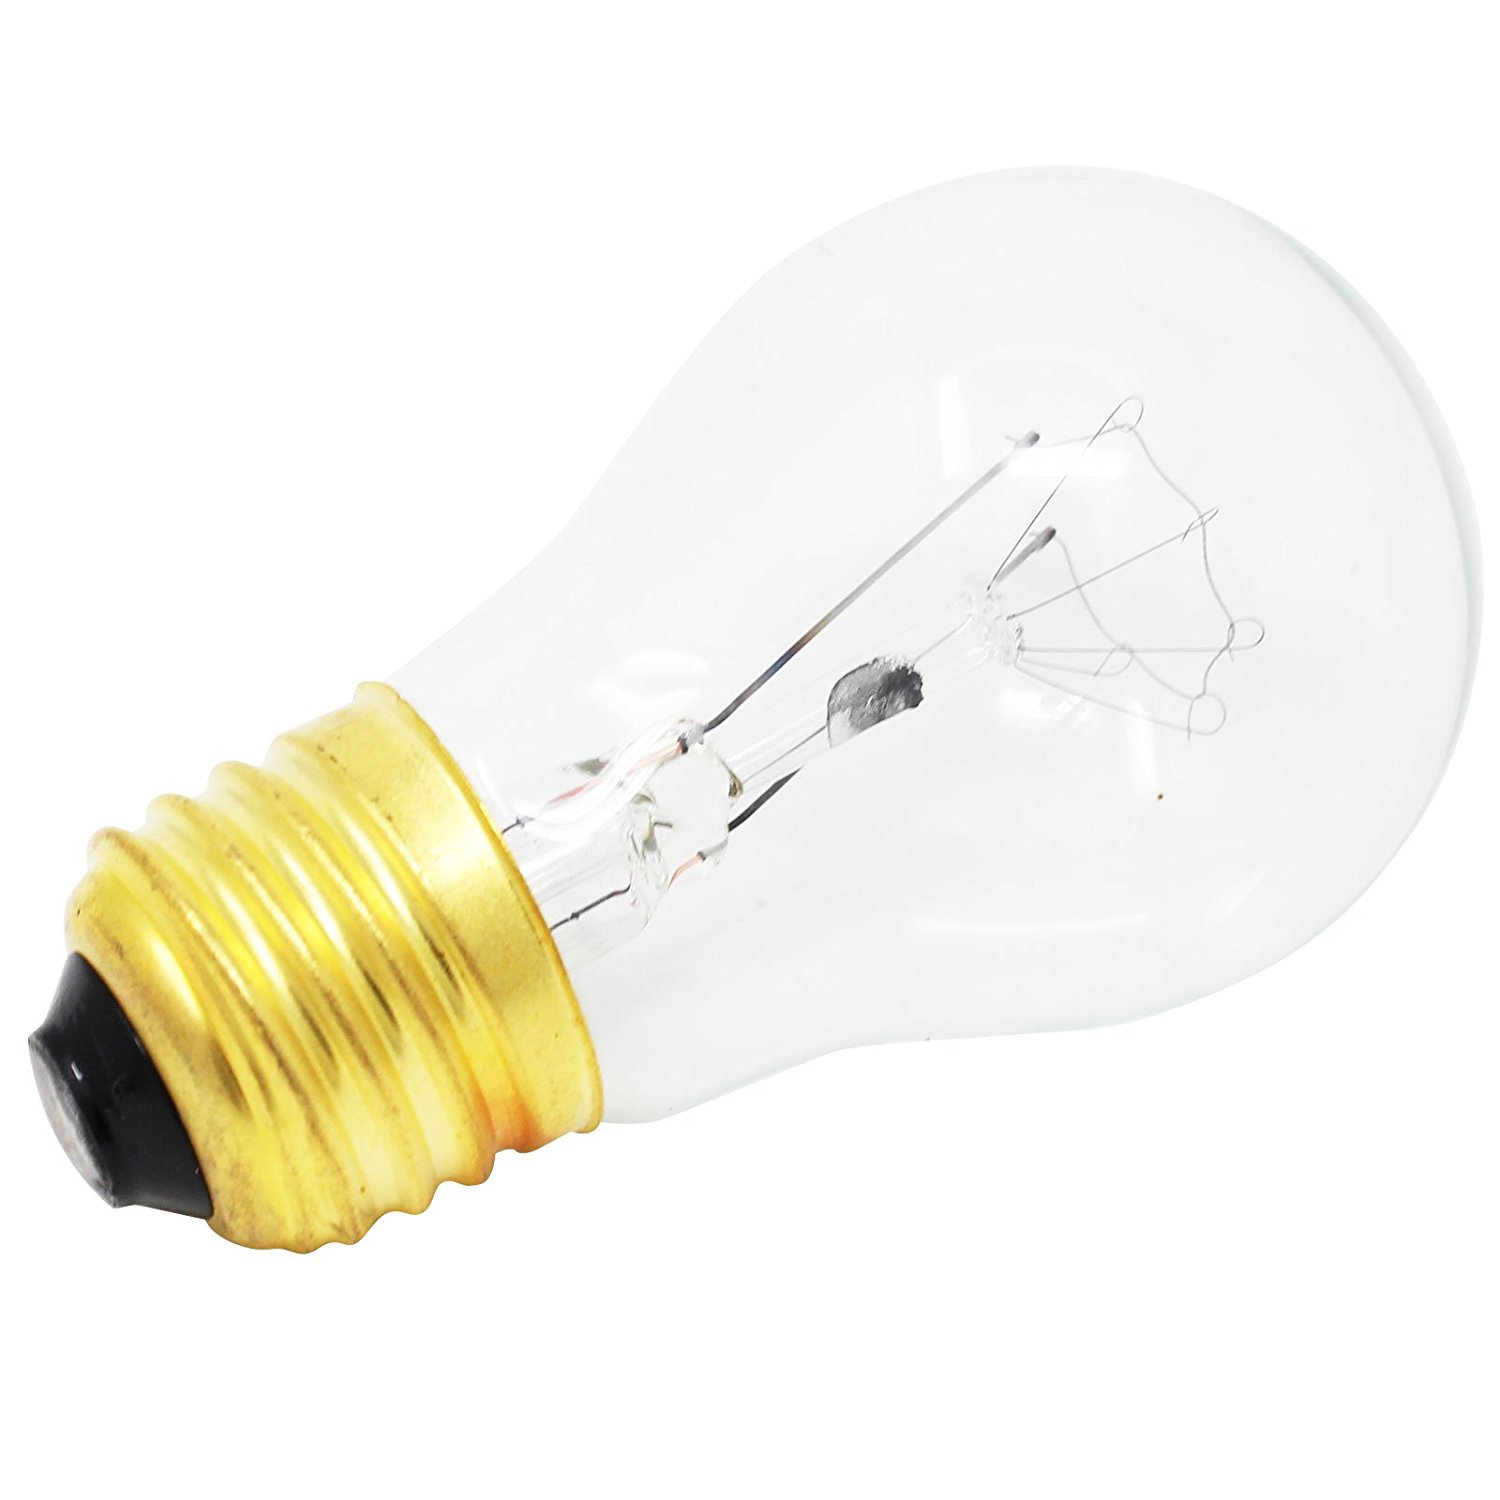 Replacement Light Bulb for Frigidaire FGEF3032KWB Range / Oven - Compatible Frigidaire 316538901 Light Bulb